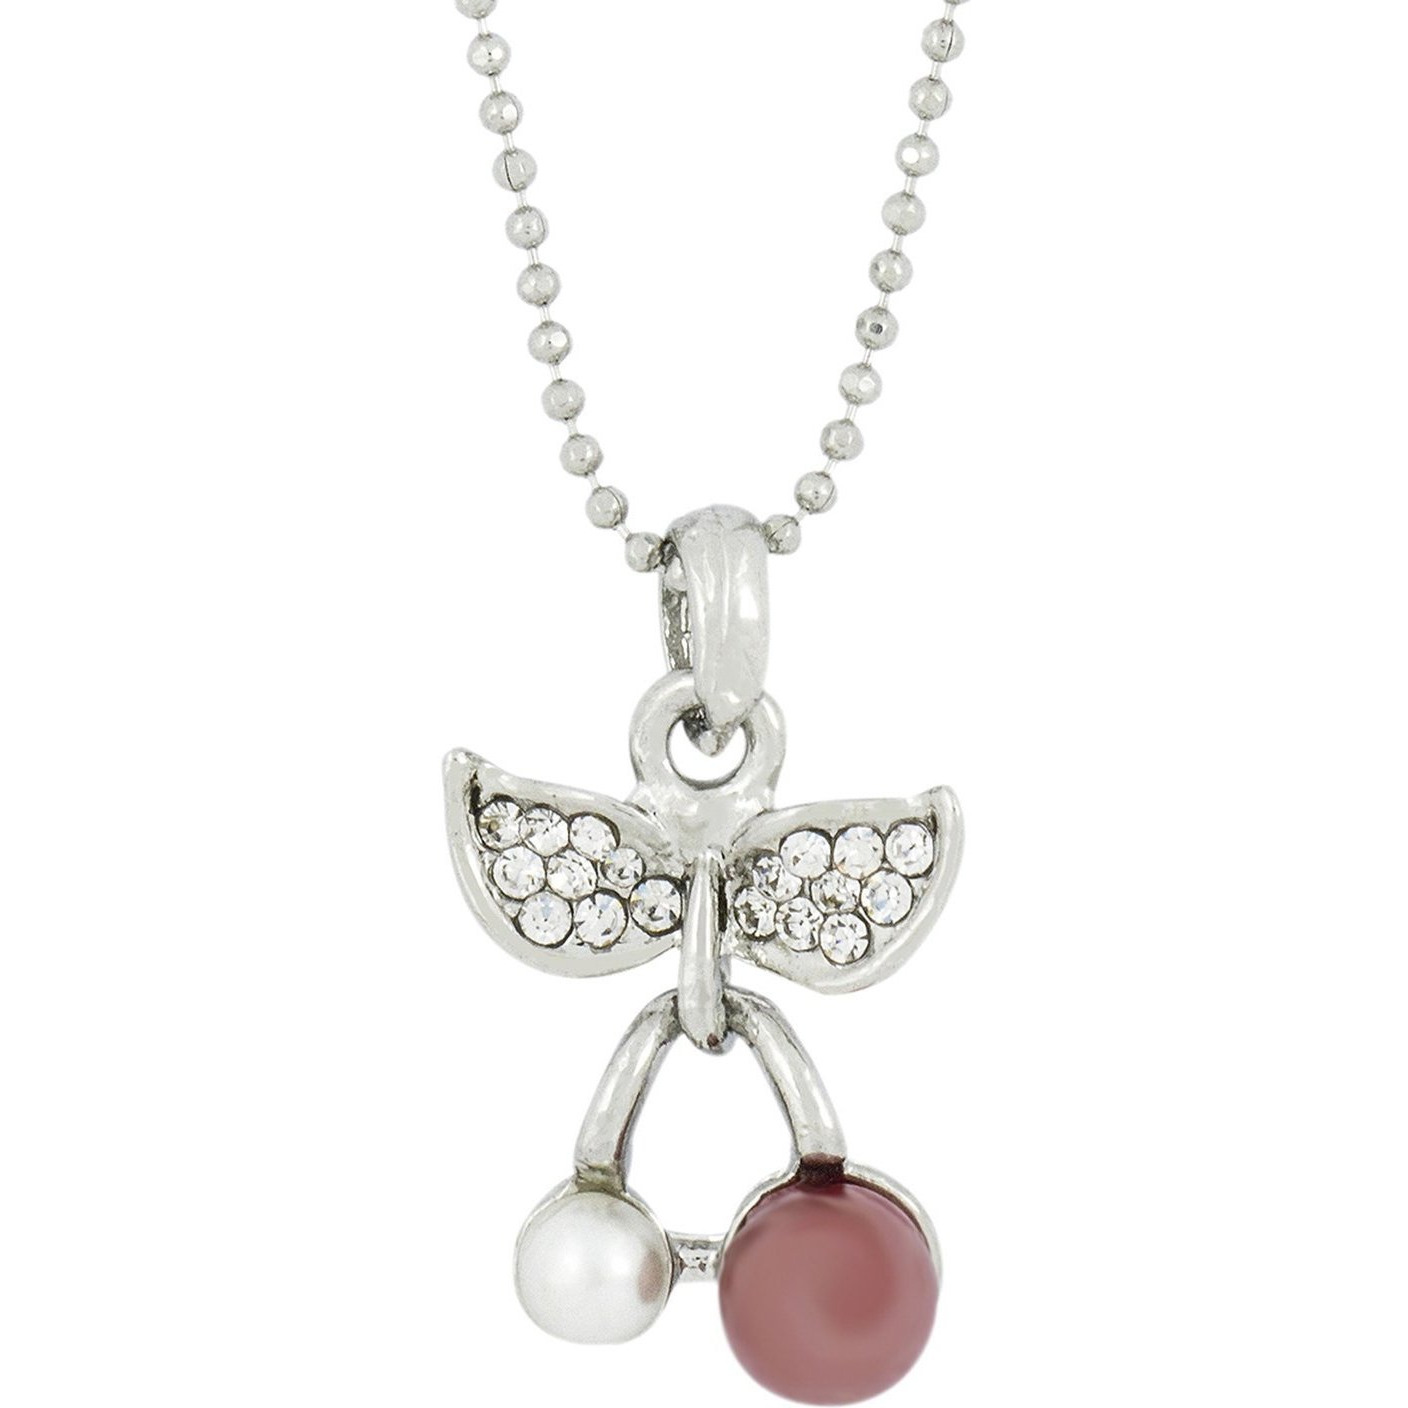 Zivom Enamel Flower 18k Gold & Rhodium Plated Brass CZ Pearl Combo Pendant Chain Set For Girl